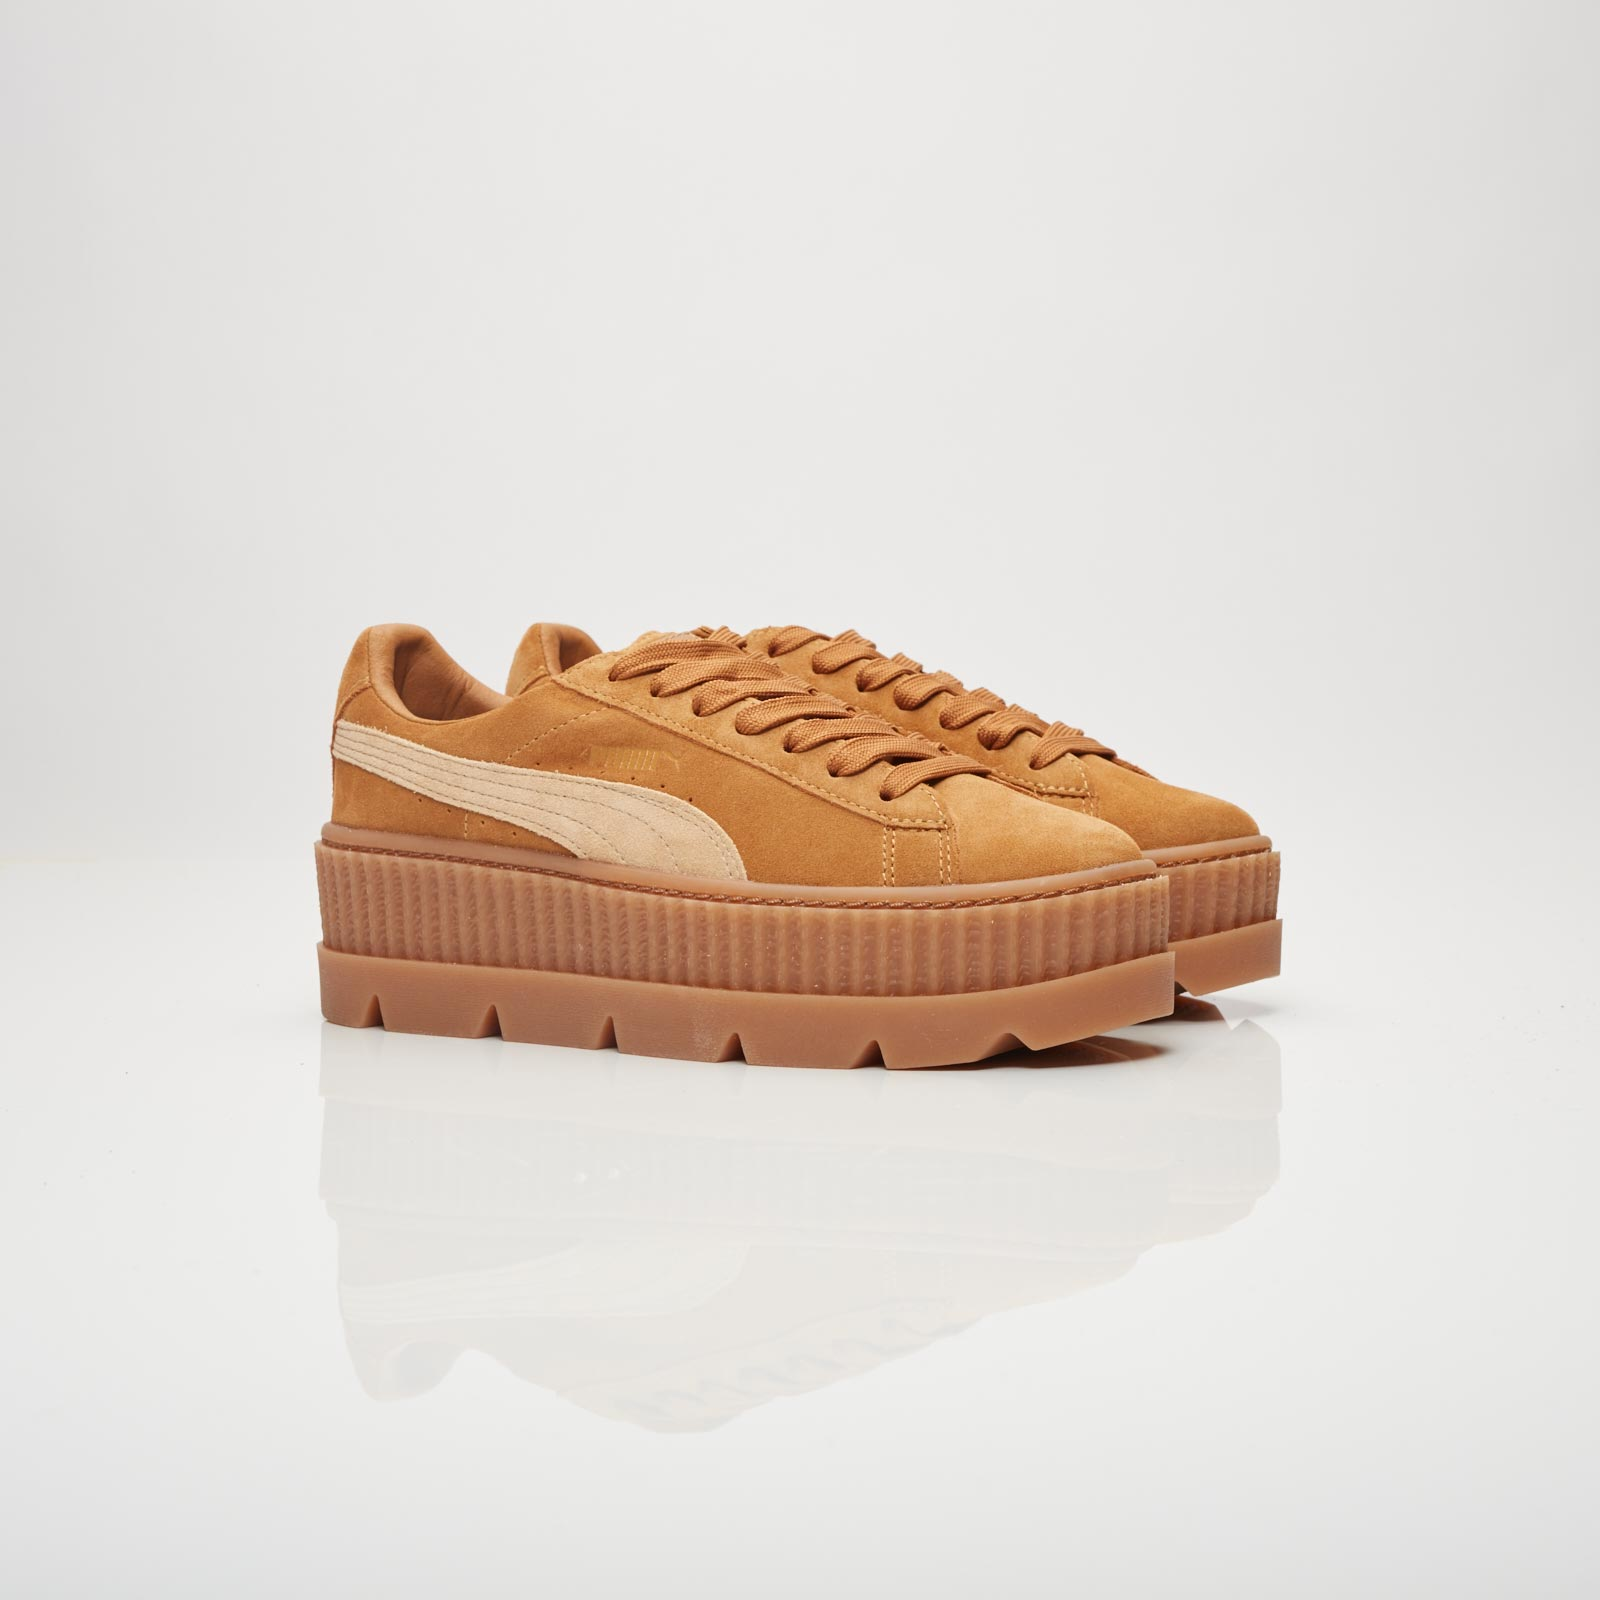 Puma Cleated Creeper Suede Wns - 366268-02 - Sneakersnstuff ... d1679a621